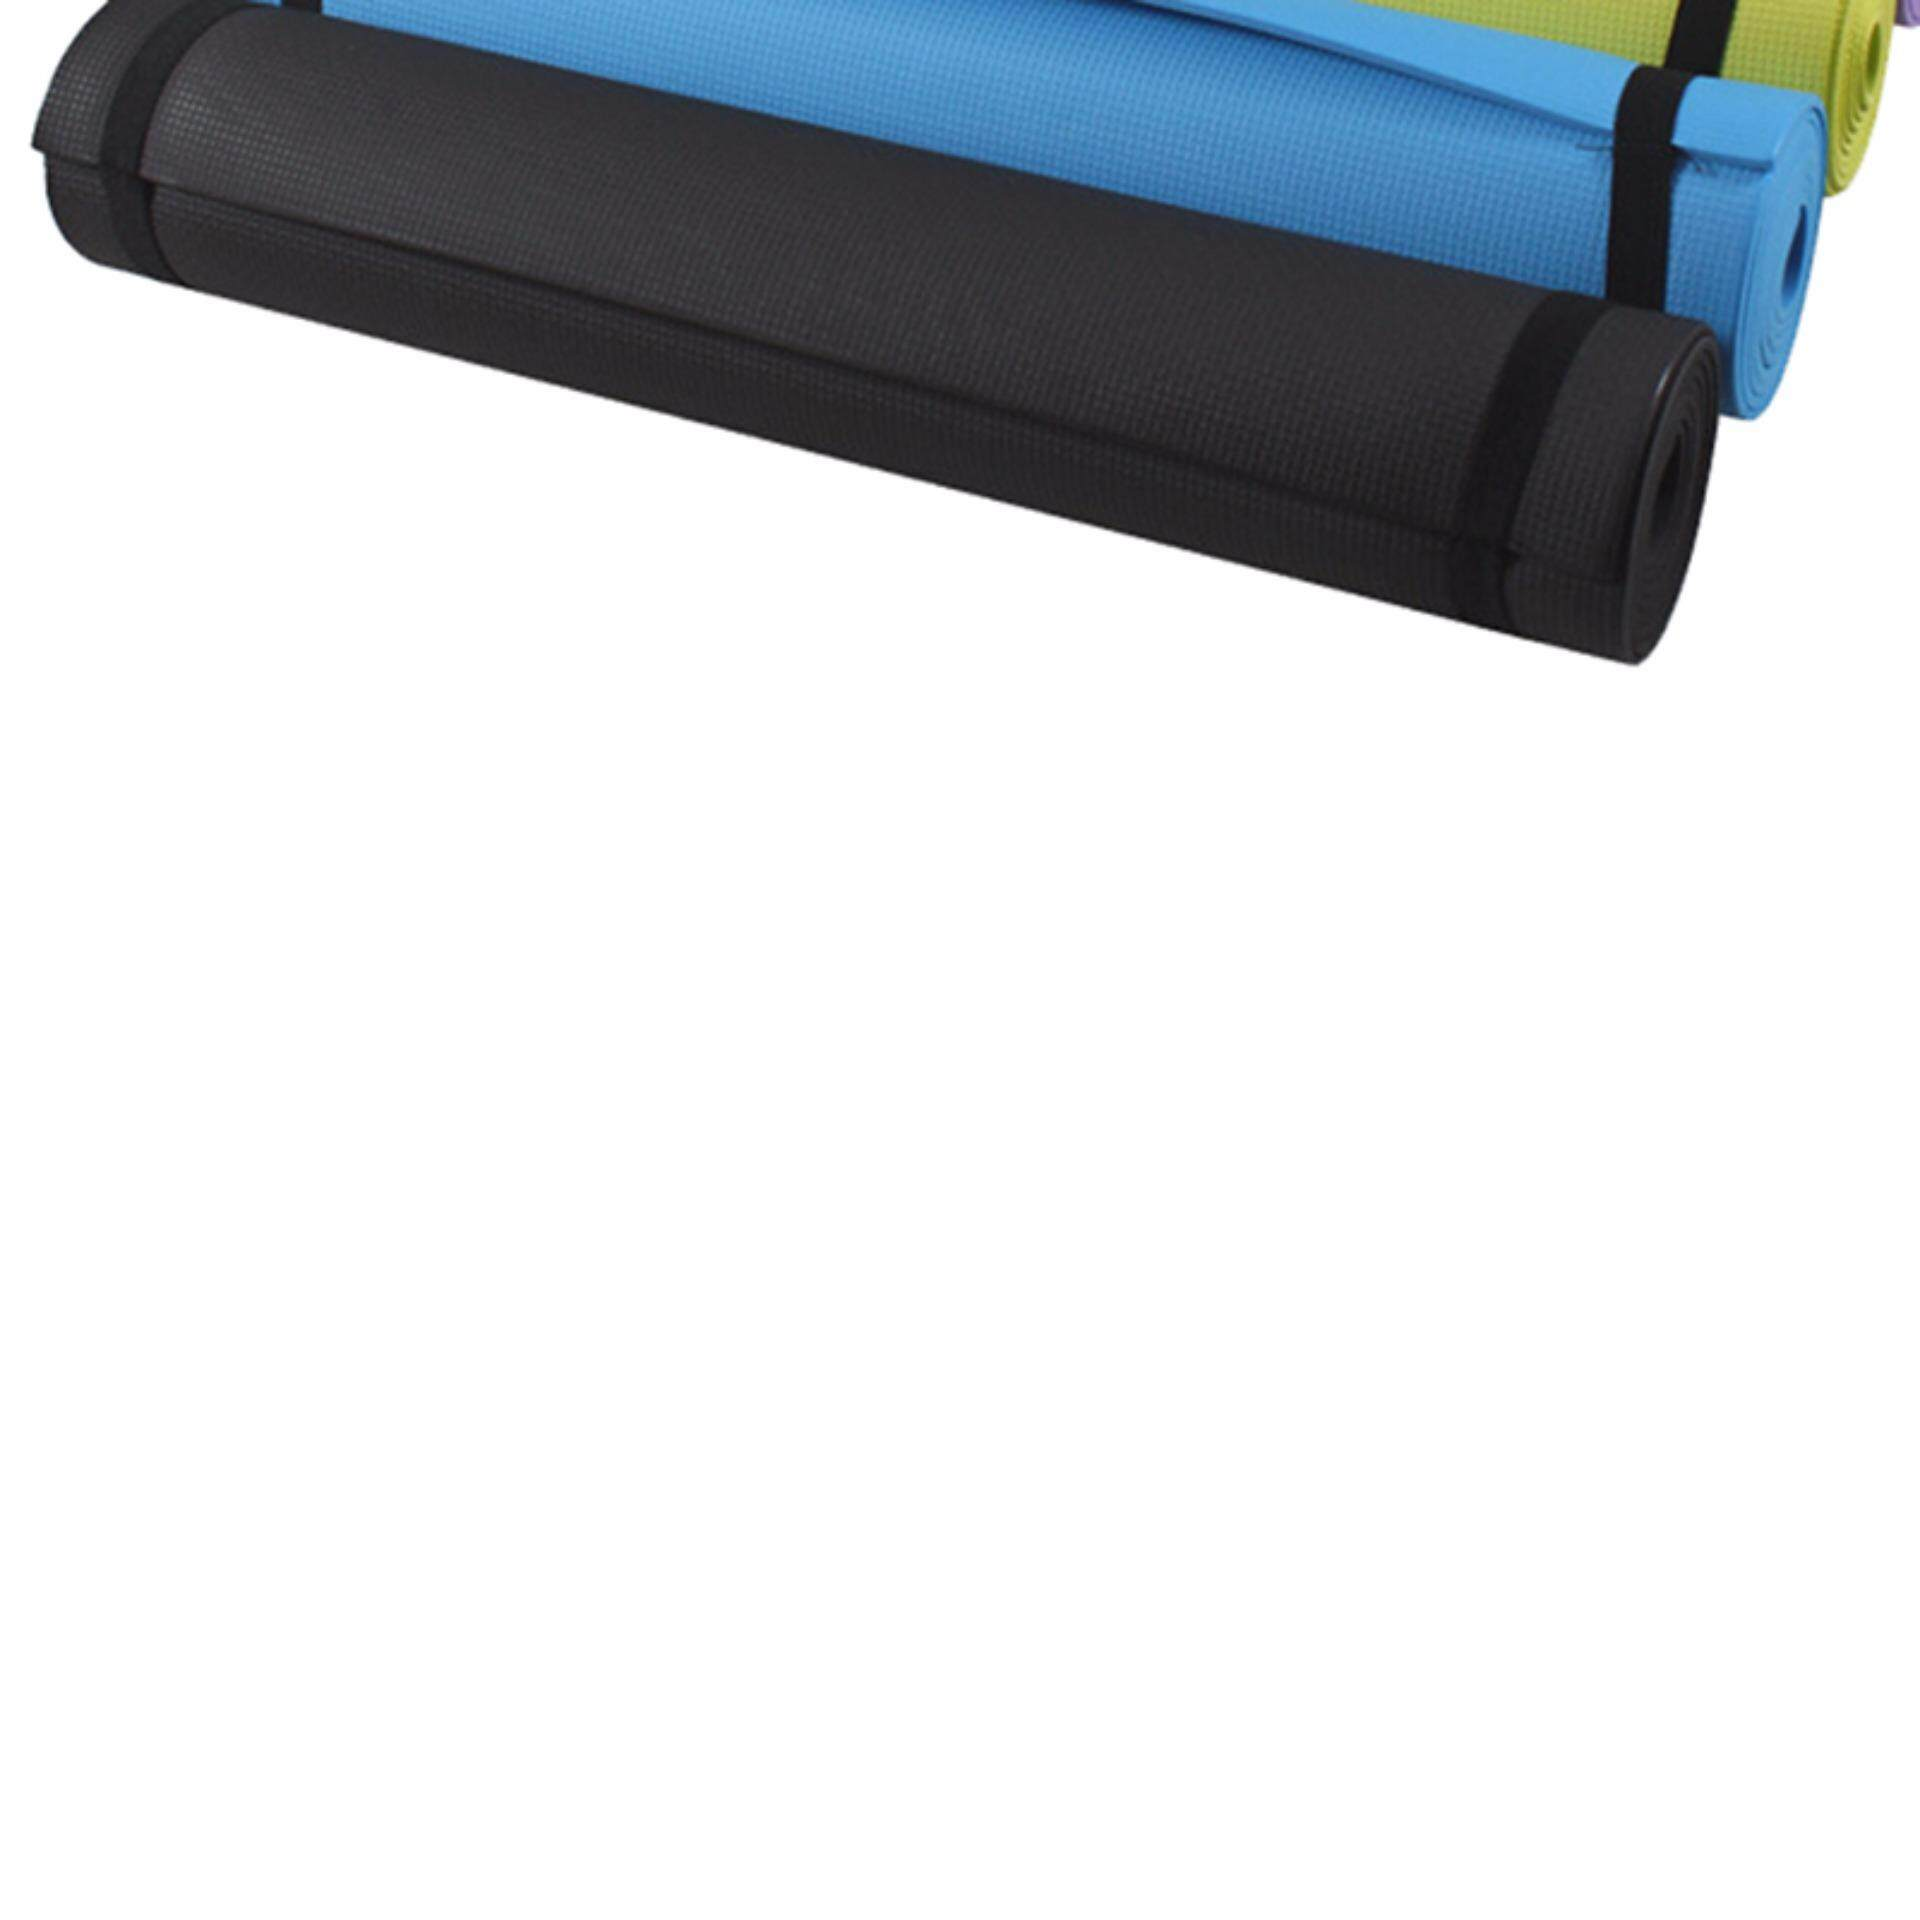 fc571c0932 4mm Thickness Eva Comfort Foam Yoga Mat For Exercise, Yoga, And Pilates